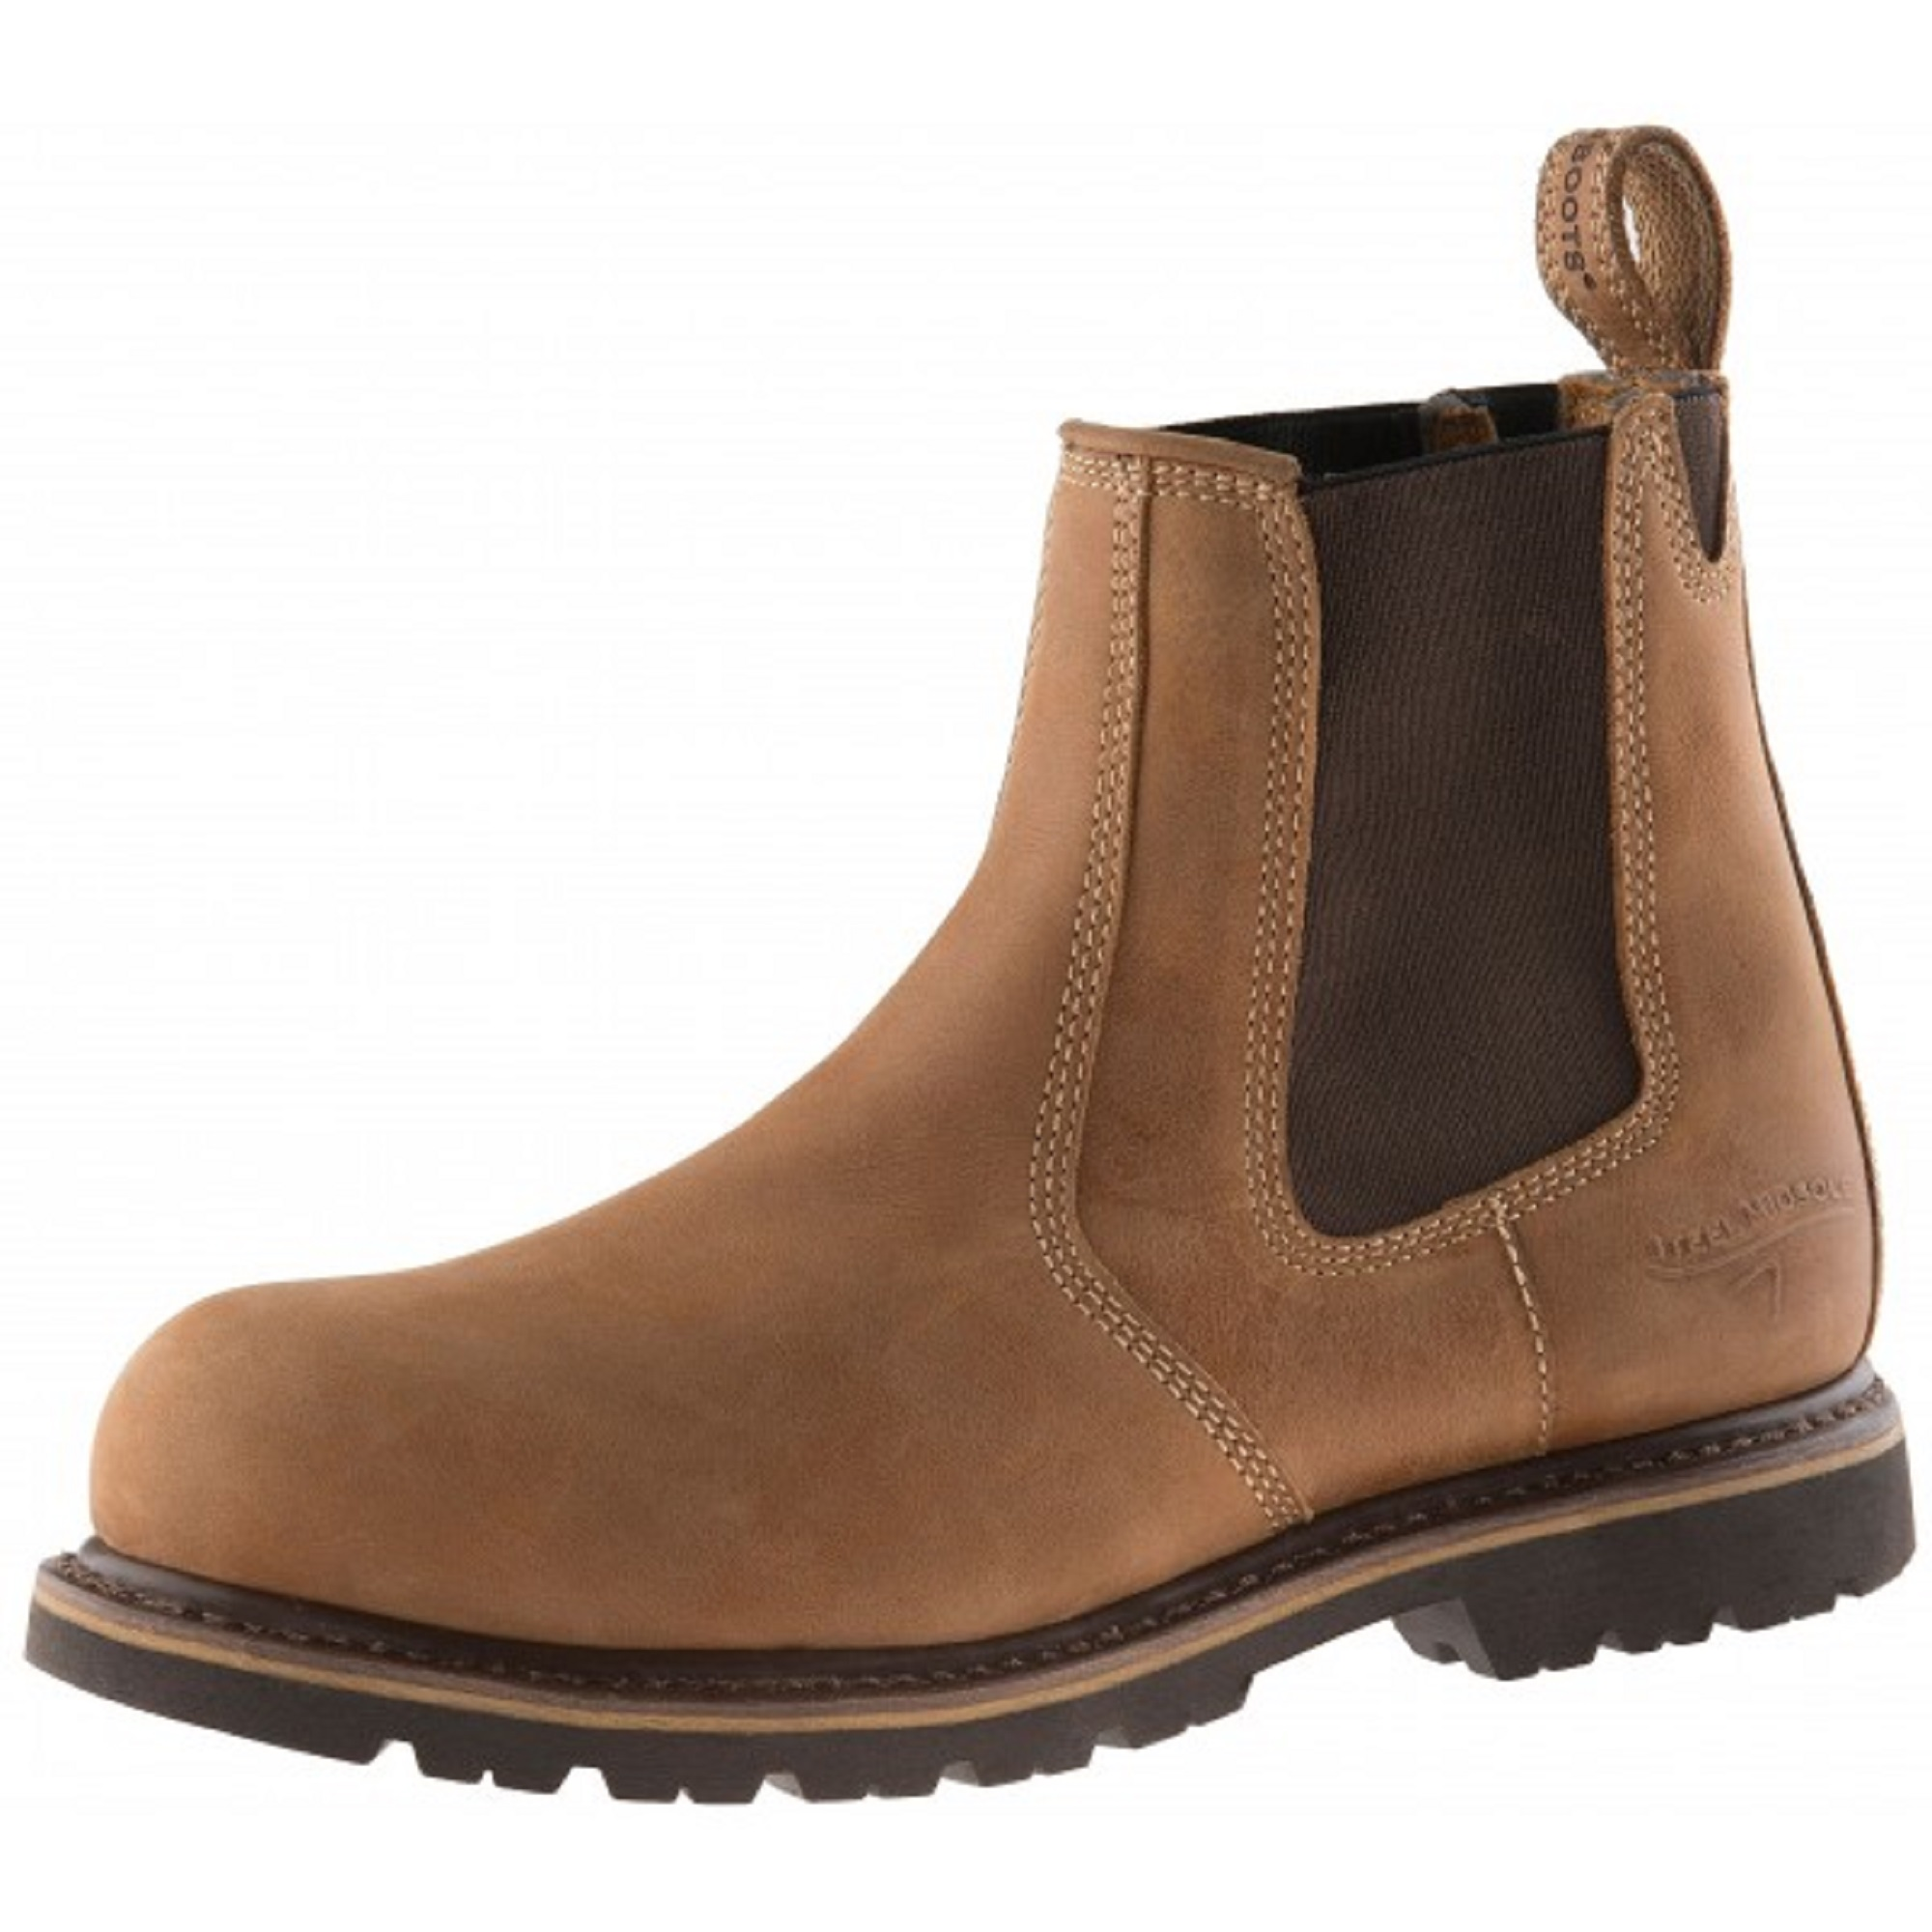 Autumn Oak leather Buckler B1151SM safety dealer boot with elasticated ankle gusset and Buckler branded pull-on tab at heel